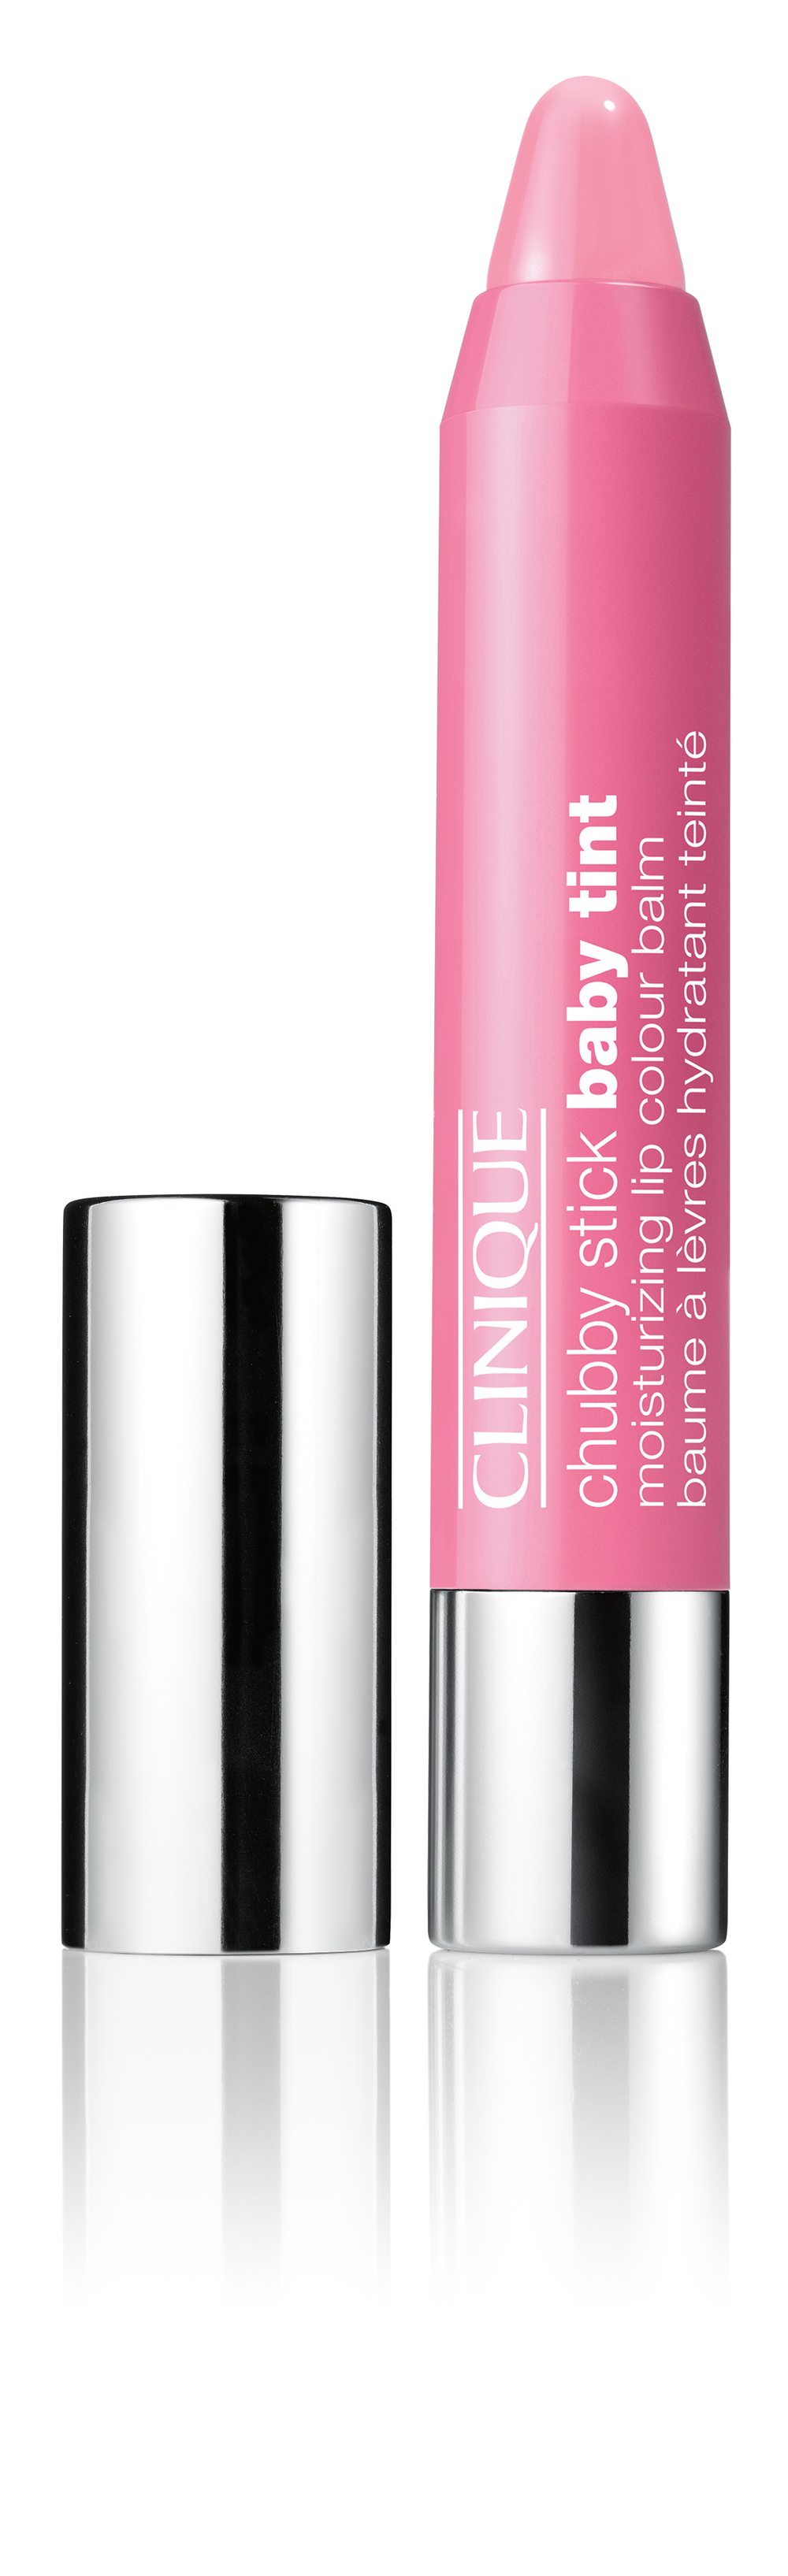 CLINIQUE Chubby Stick Baby Tint Moisturizing Lip Colour Balm BUDDING BLOSSOM INT ICON.jpg